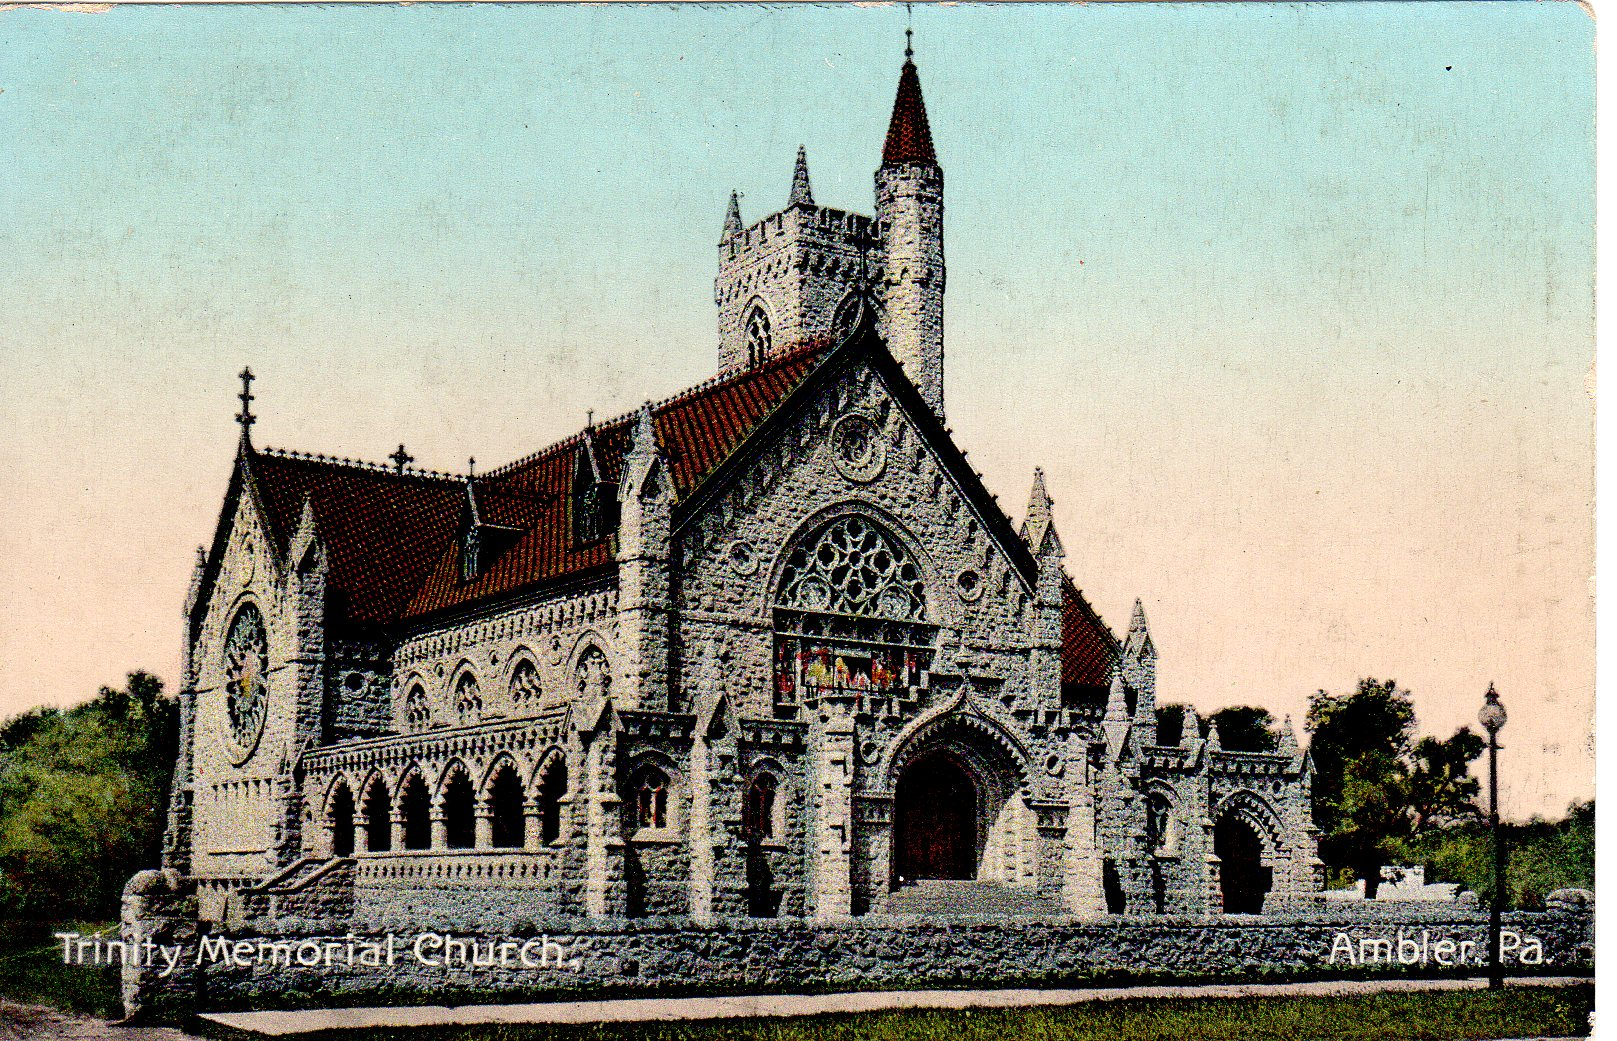 Post Card Collection (E Simon)_2682_21_Trinity Memorial Church, Ambler, Pa